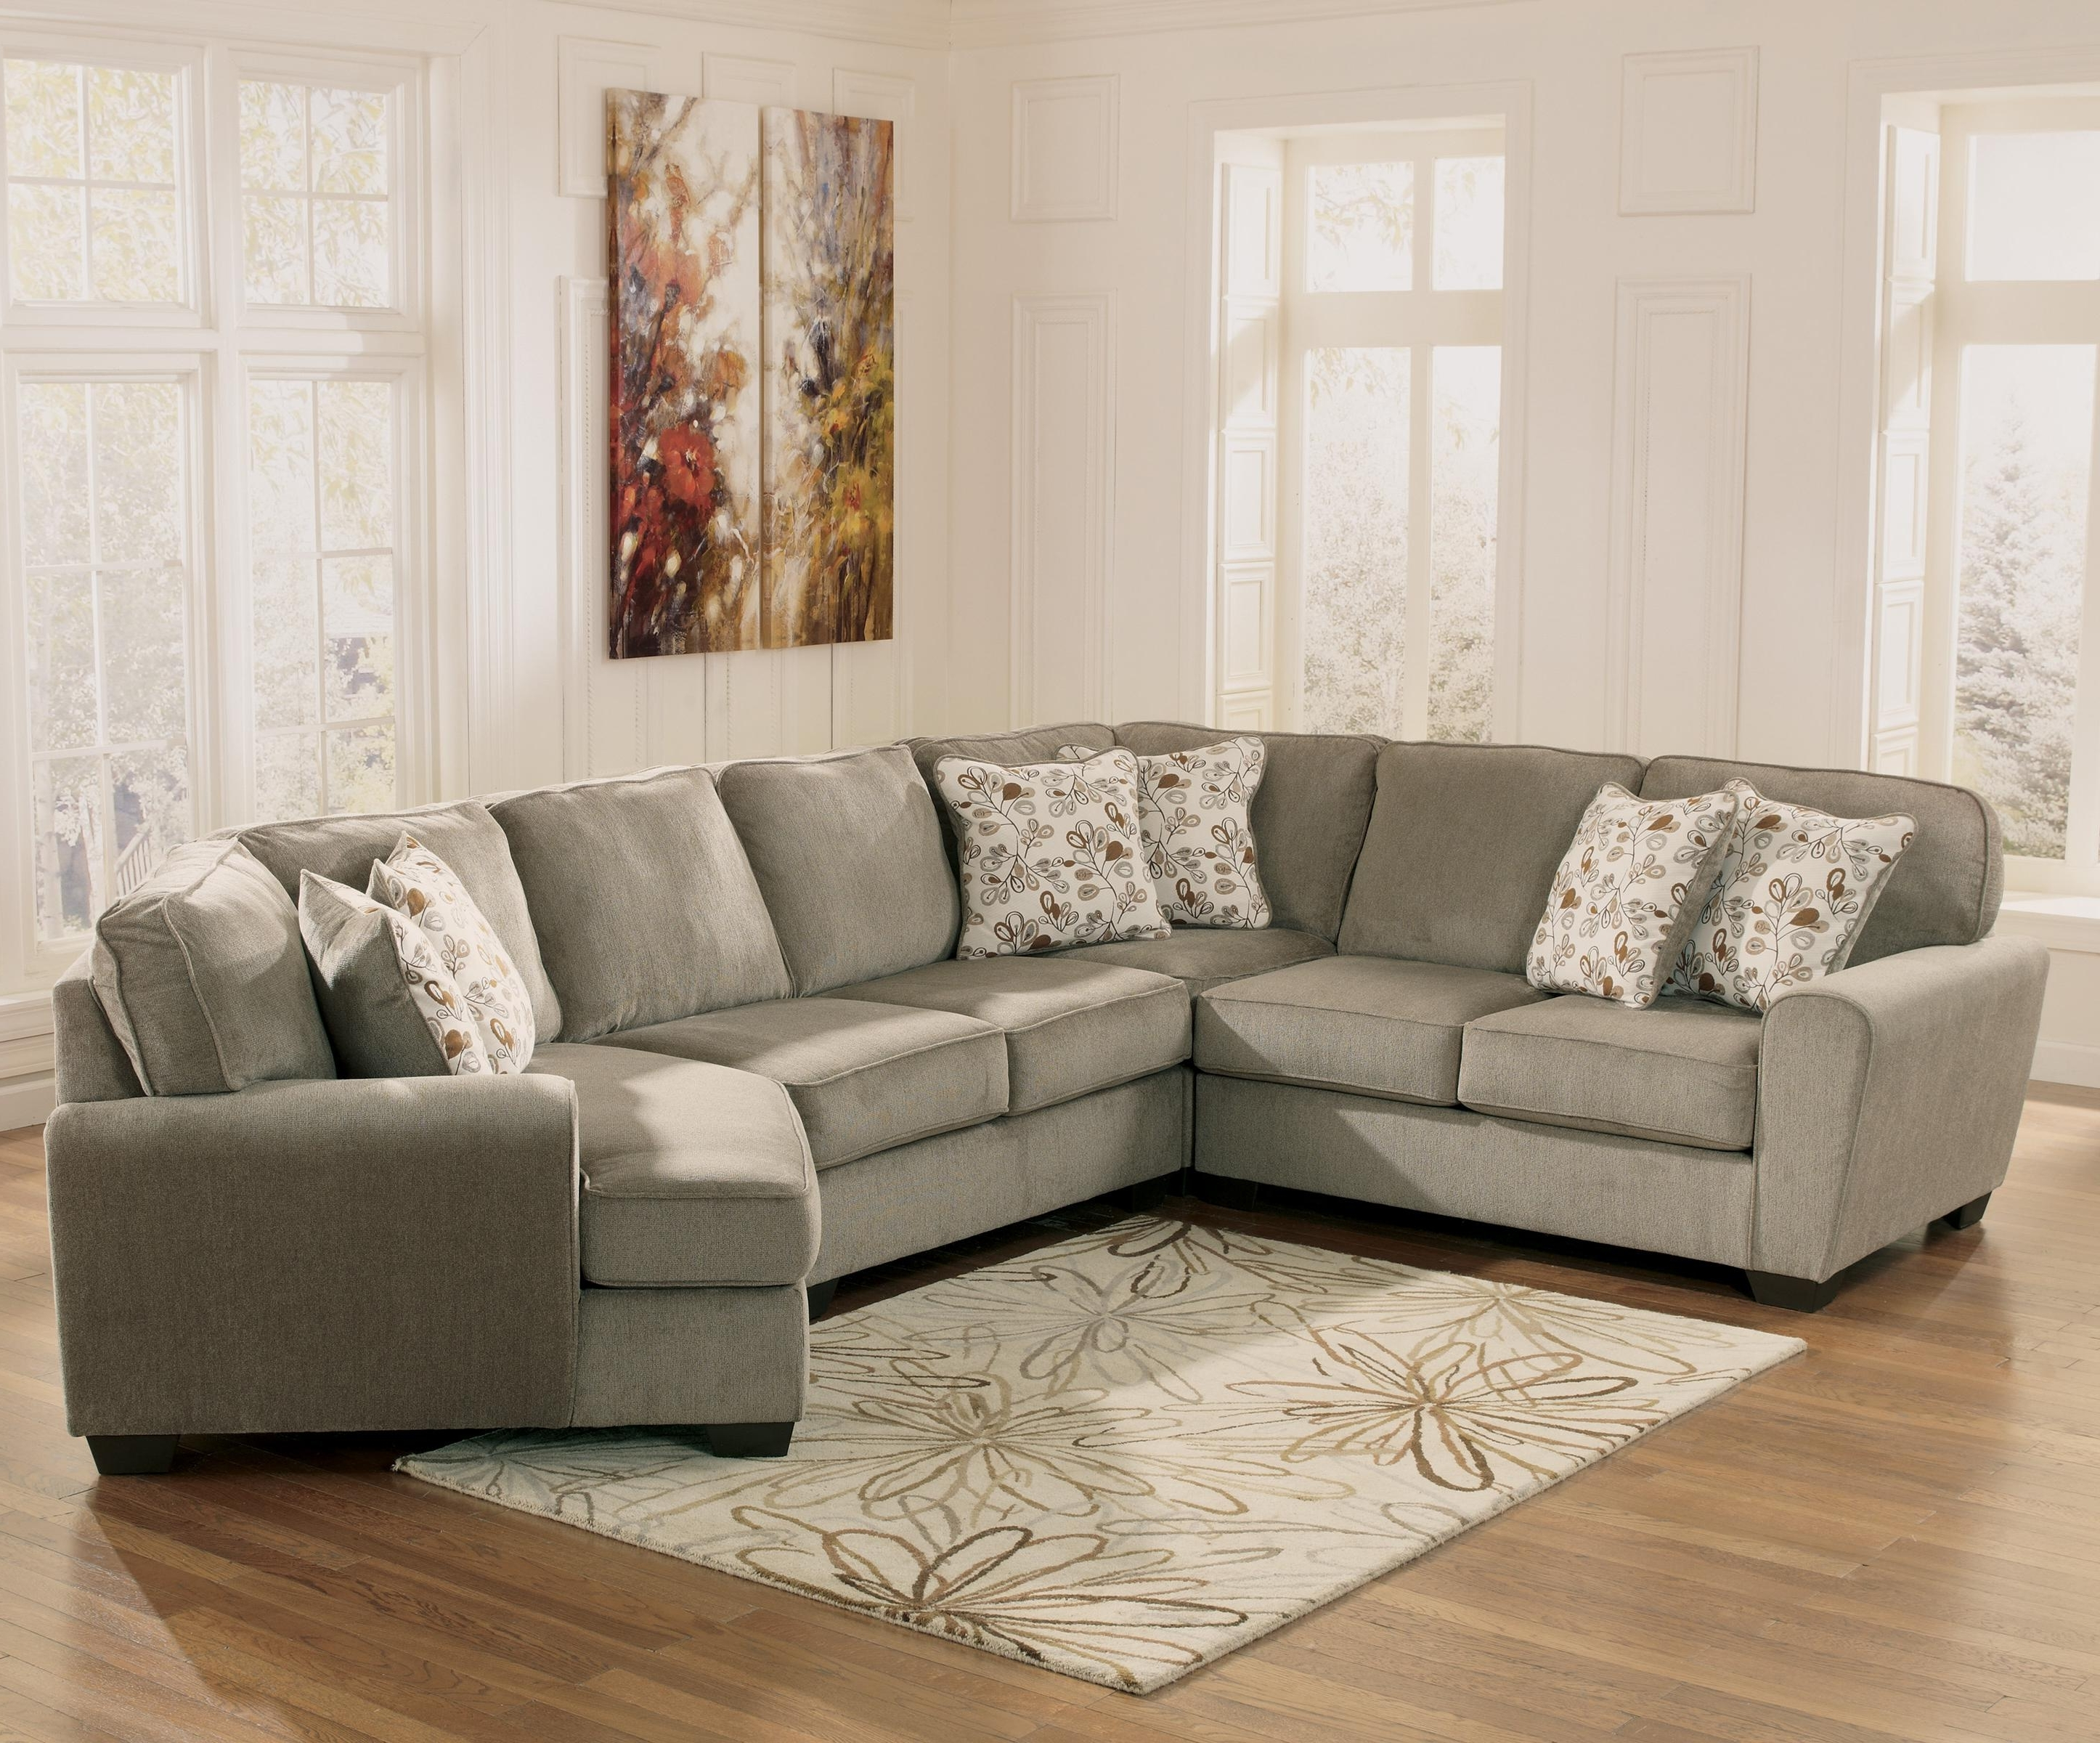 Ashley Furniture Patola Park – Patina 4 Piece Small Sectional With With Regard To Current Green Bay Wi Sectional Sofas (View 9 of 20)